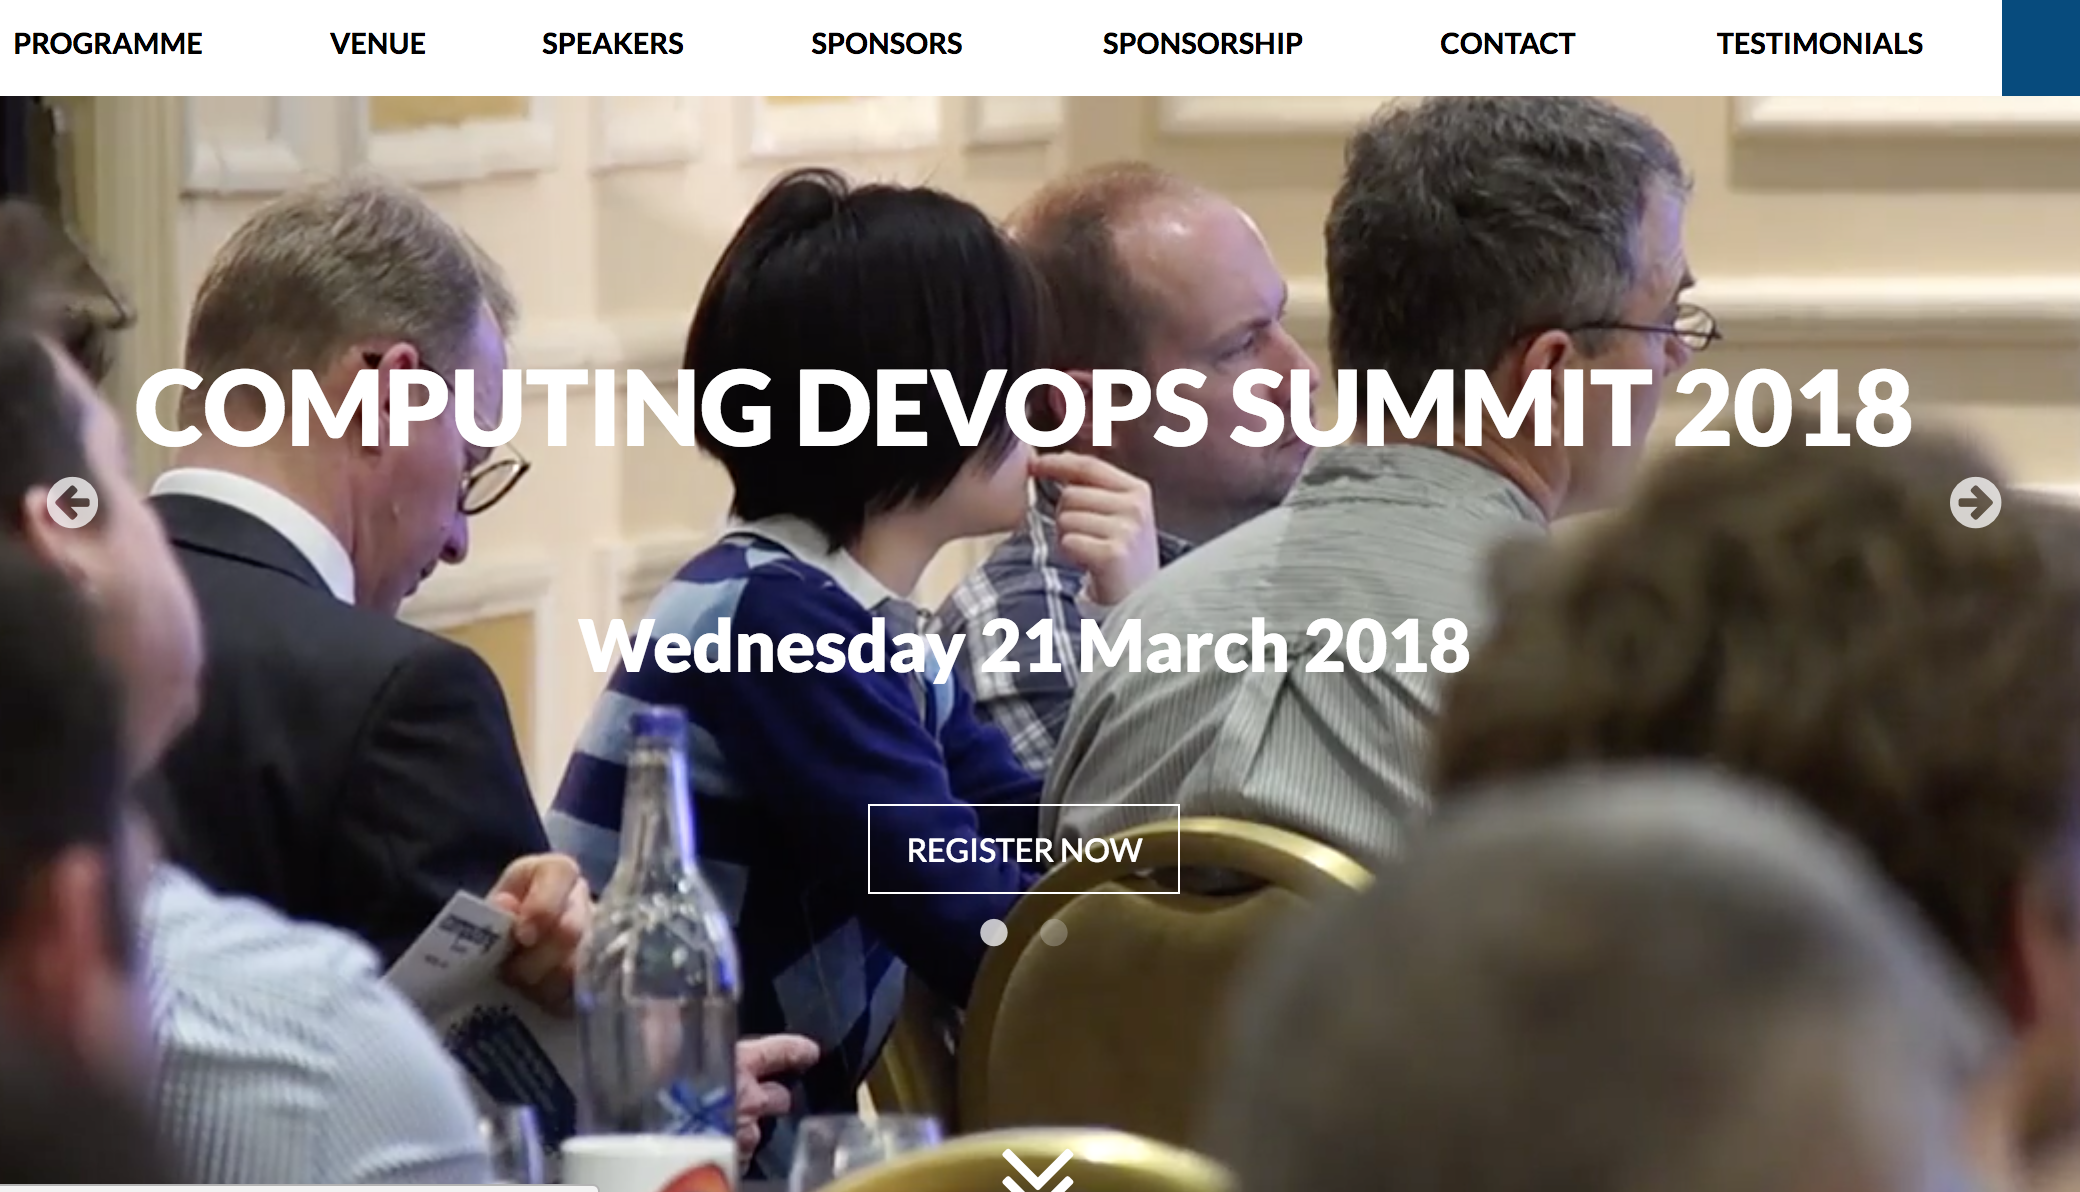 DevOps Summit 2018